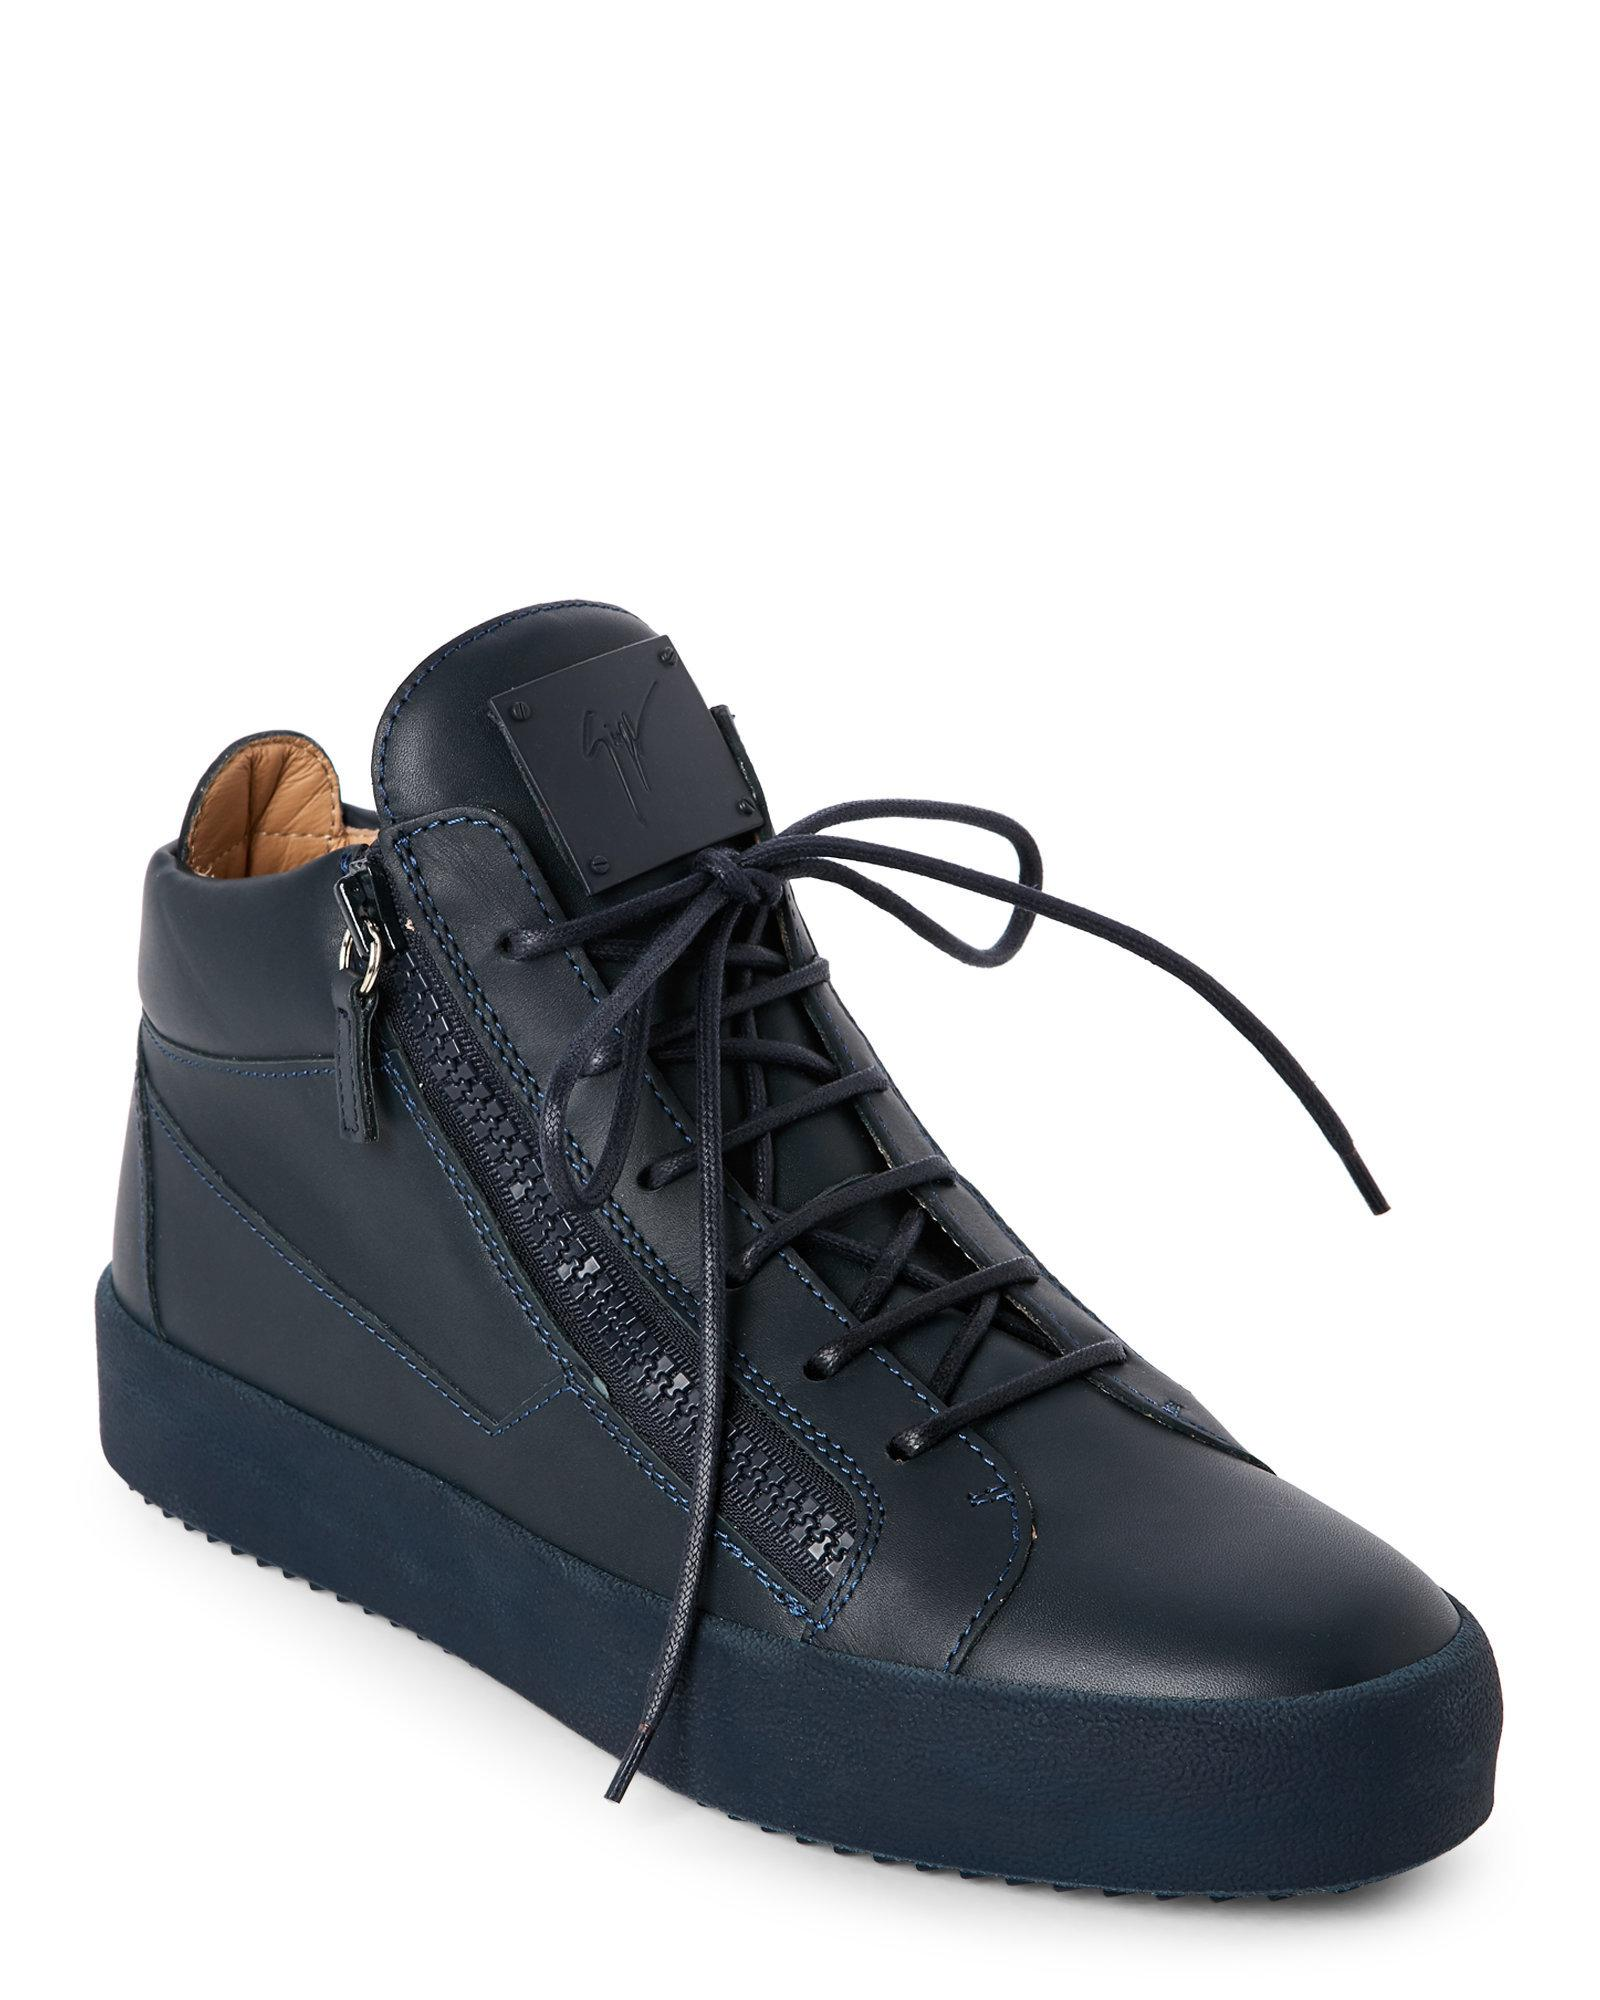 Giuseppe zanotti Navy May London Sneakers in Blue for Men ...